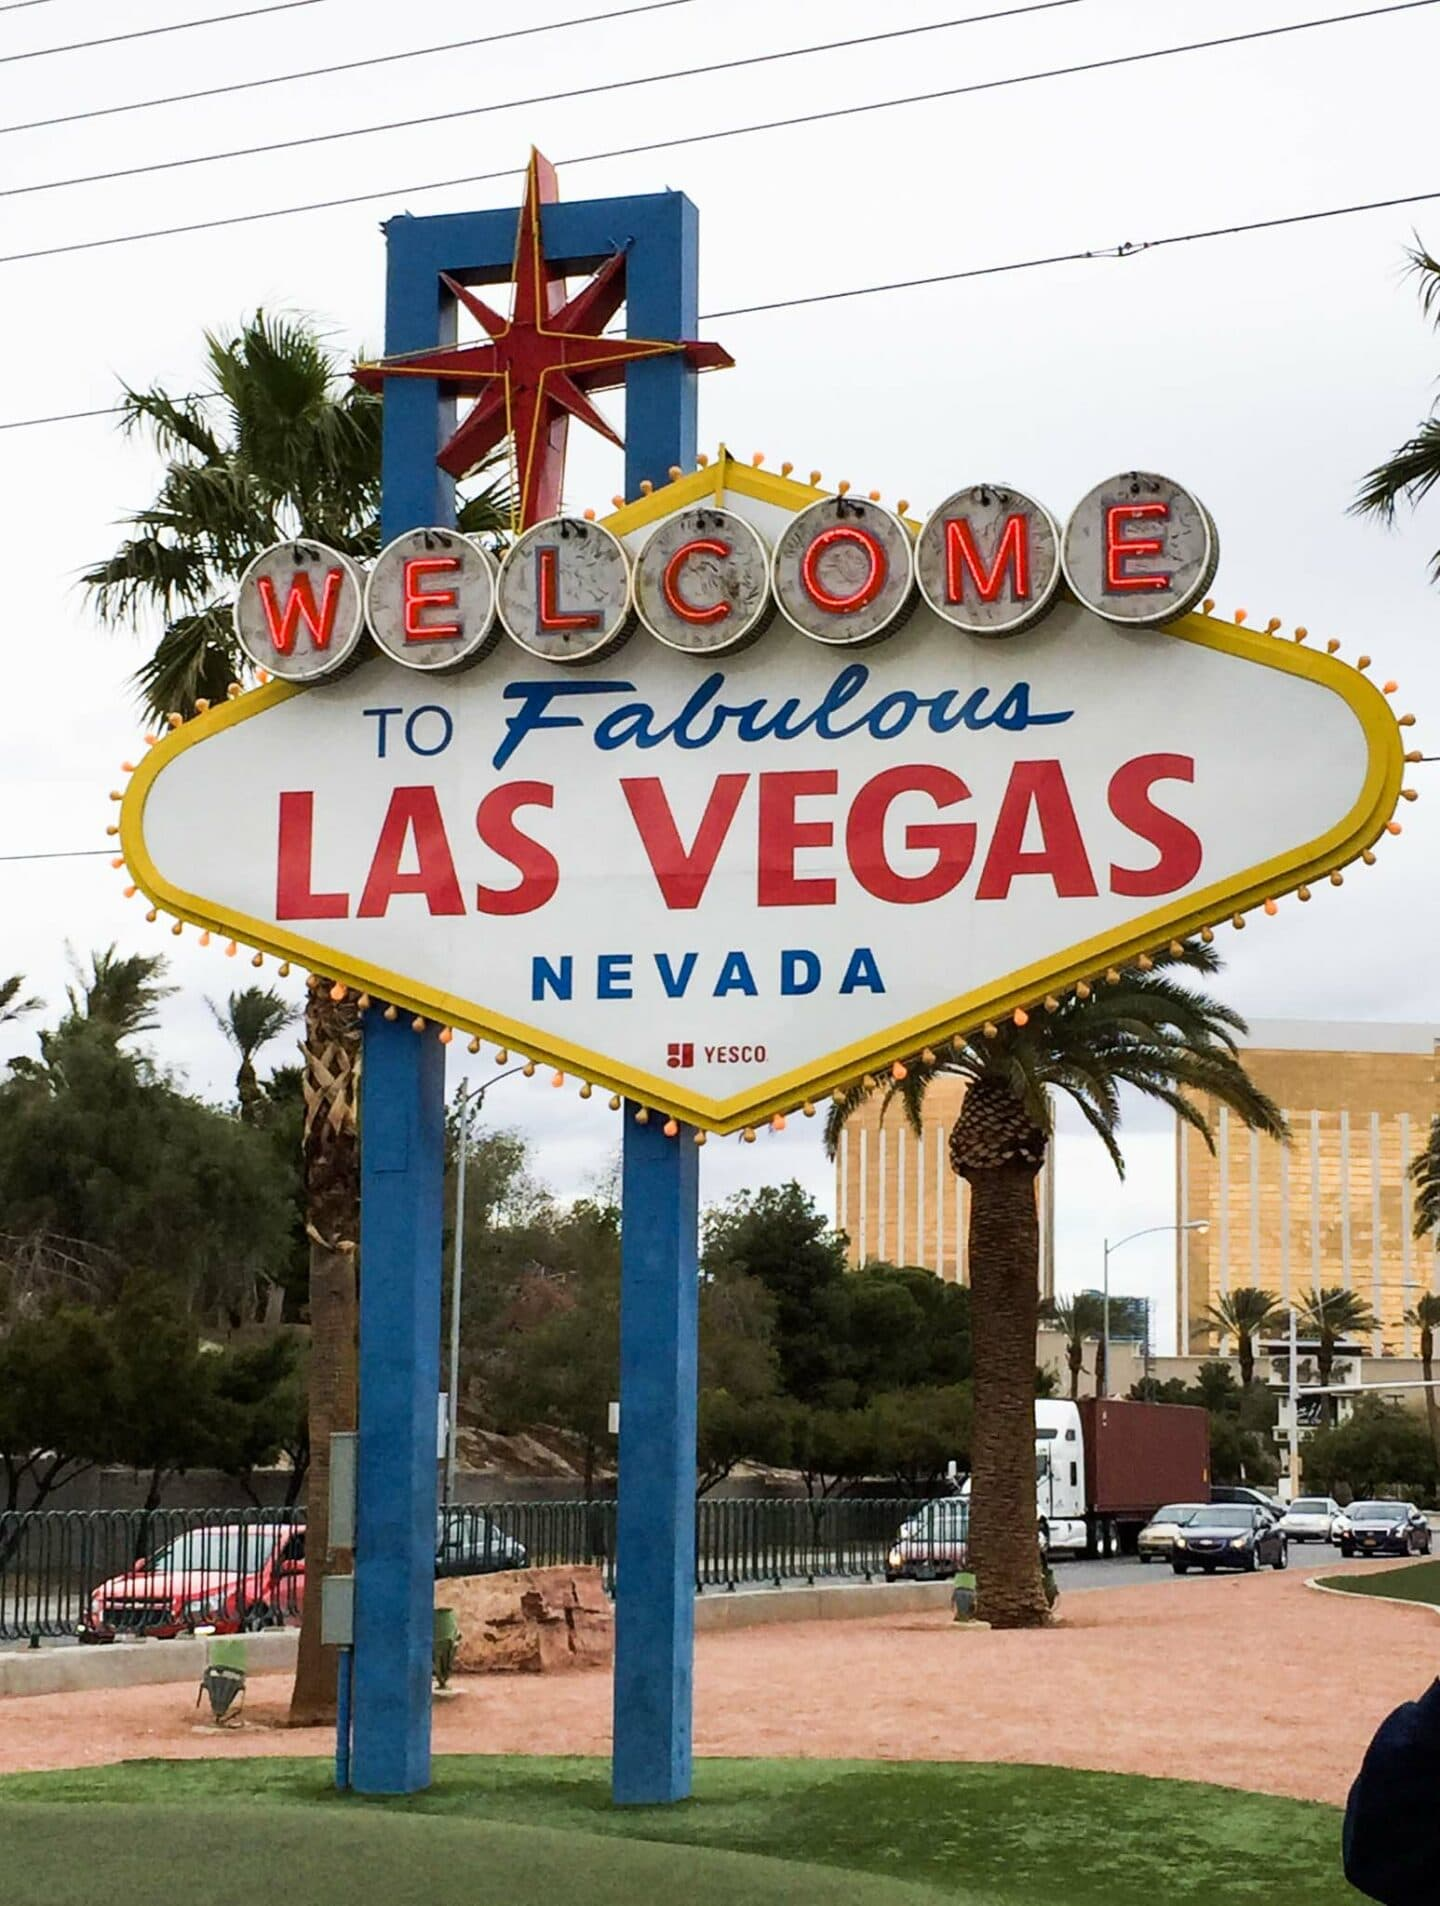 The famous Las Vegas sign is a short drive from the main action on the strip.